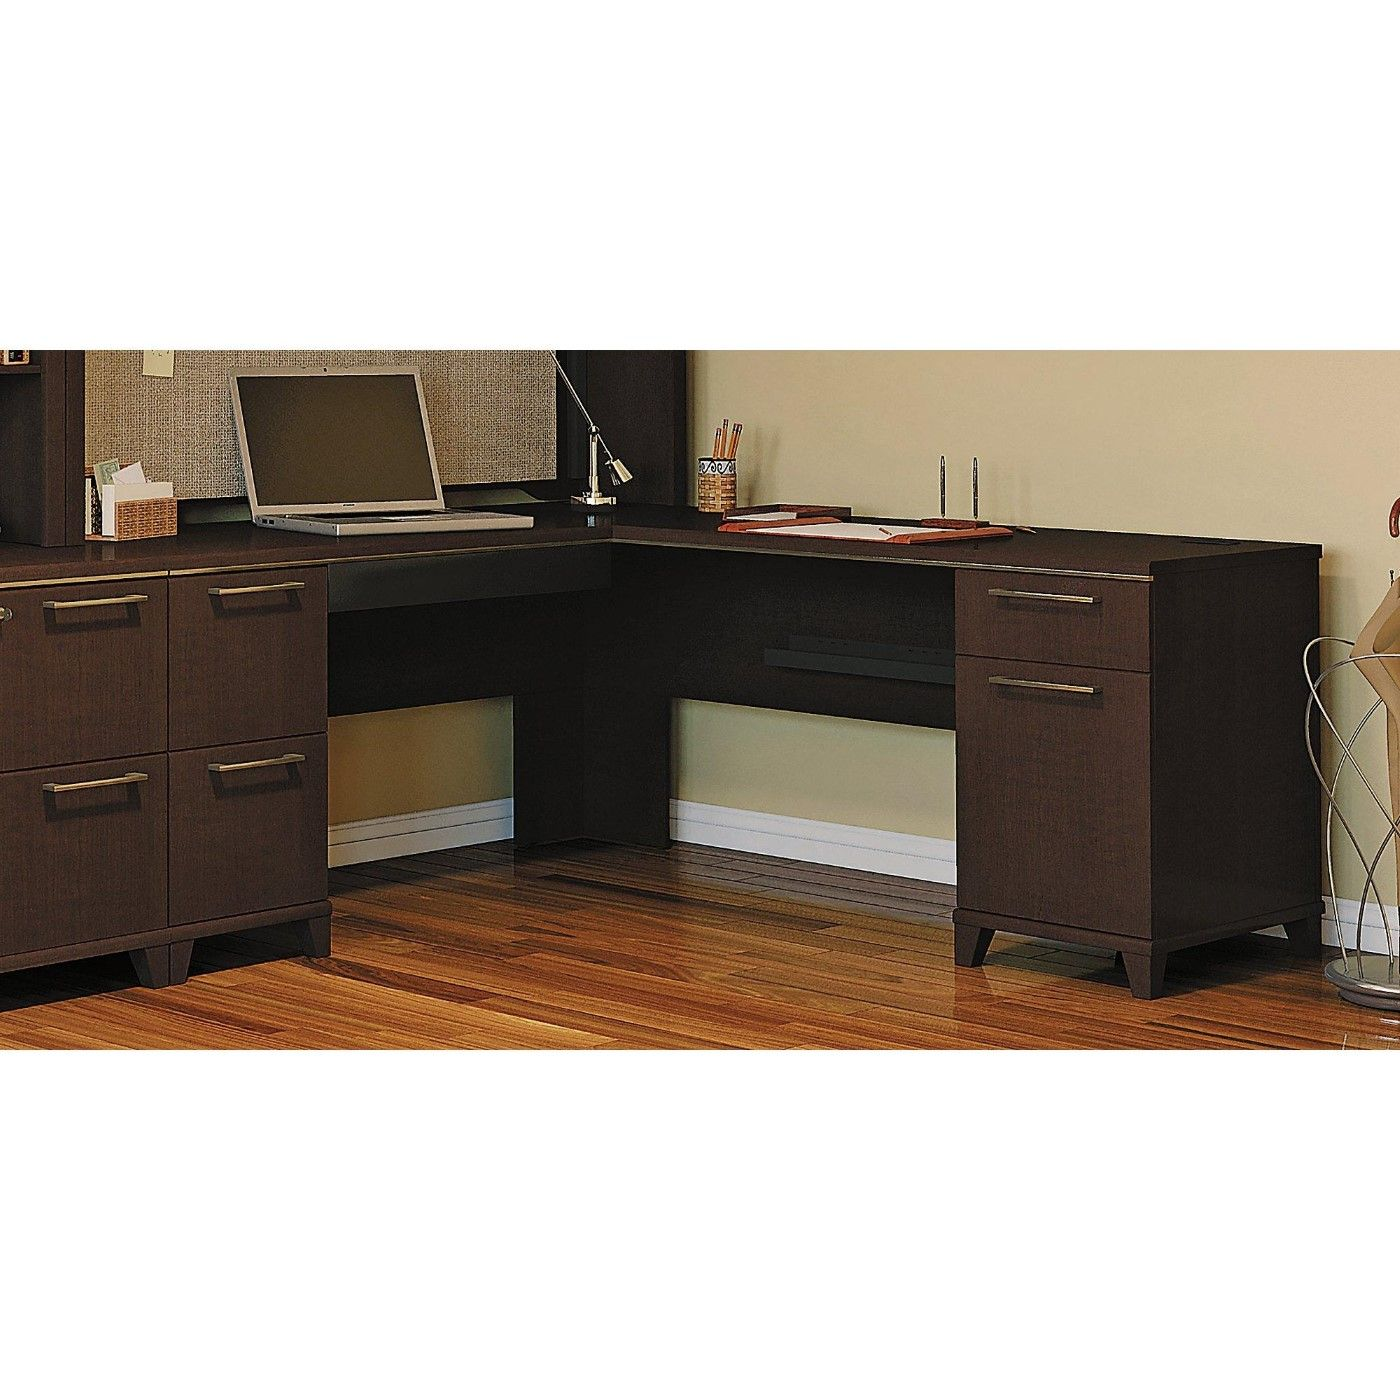 BUSH BUSINESS FURNITURE ENTERPRISE MOCHA CHERRY 72W x 72D L-SHAPED DESK #EH-2910MC-03K. FREE SHIPPING:</font></b></font></b>&#x1F384<font color=red><b>ERGONOMICHOME HOLIDAY SALE - ENDS DEC. 17, 2019</b></font>&#x1F384